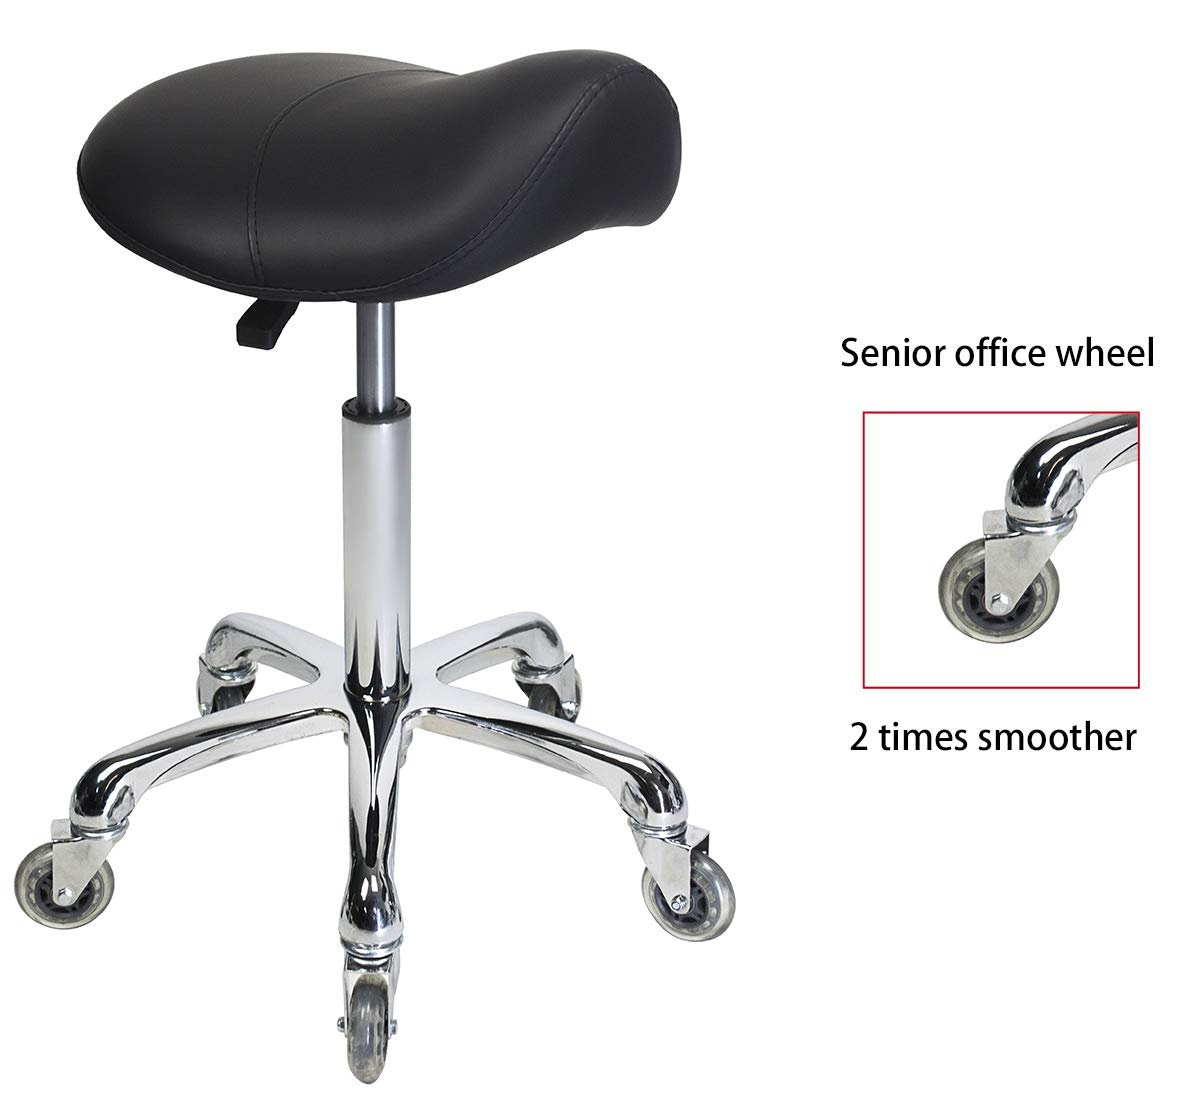 Saddle Stool Rolling Ergonomic Swivel Chair for Dental Office Massage Clinic Spa Salon,Adjustable Hydraulic Stool with Wheels (Black) by Antlu